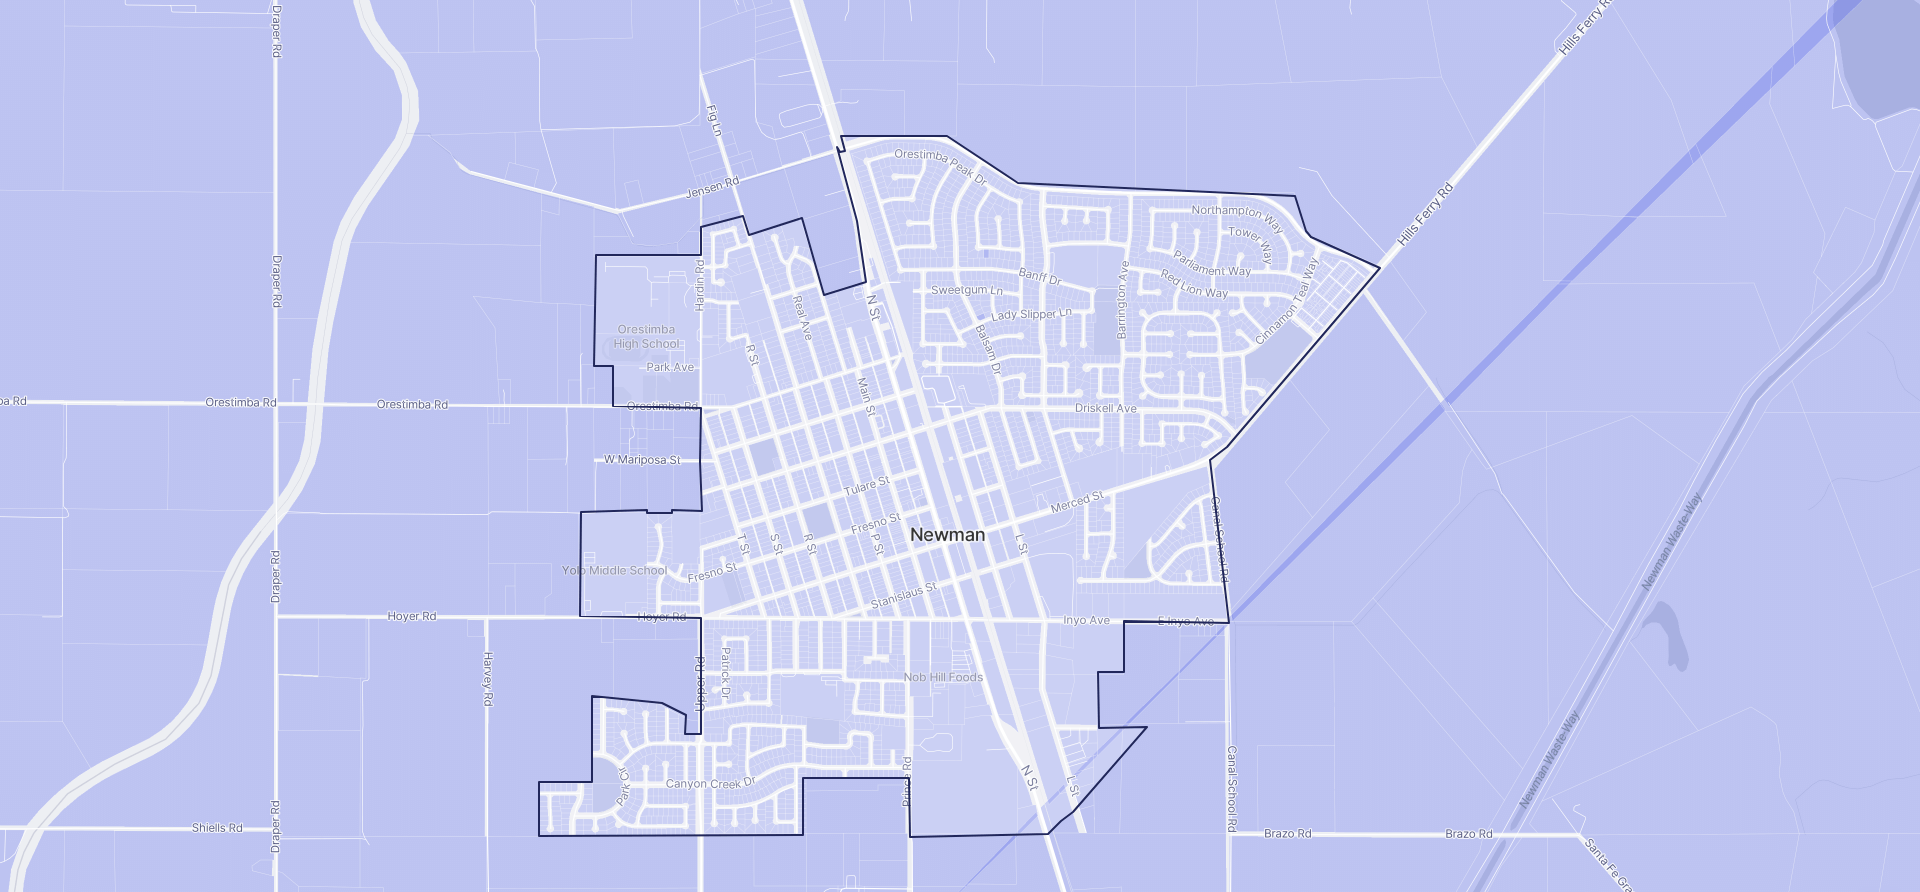 Image of Newman boundaries on a map.